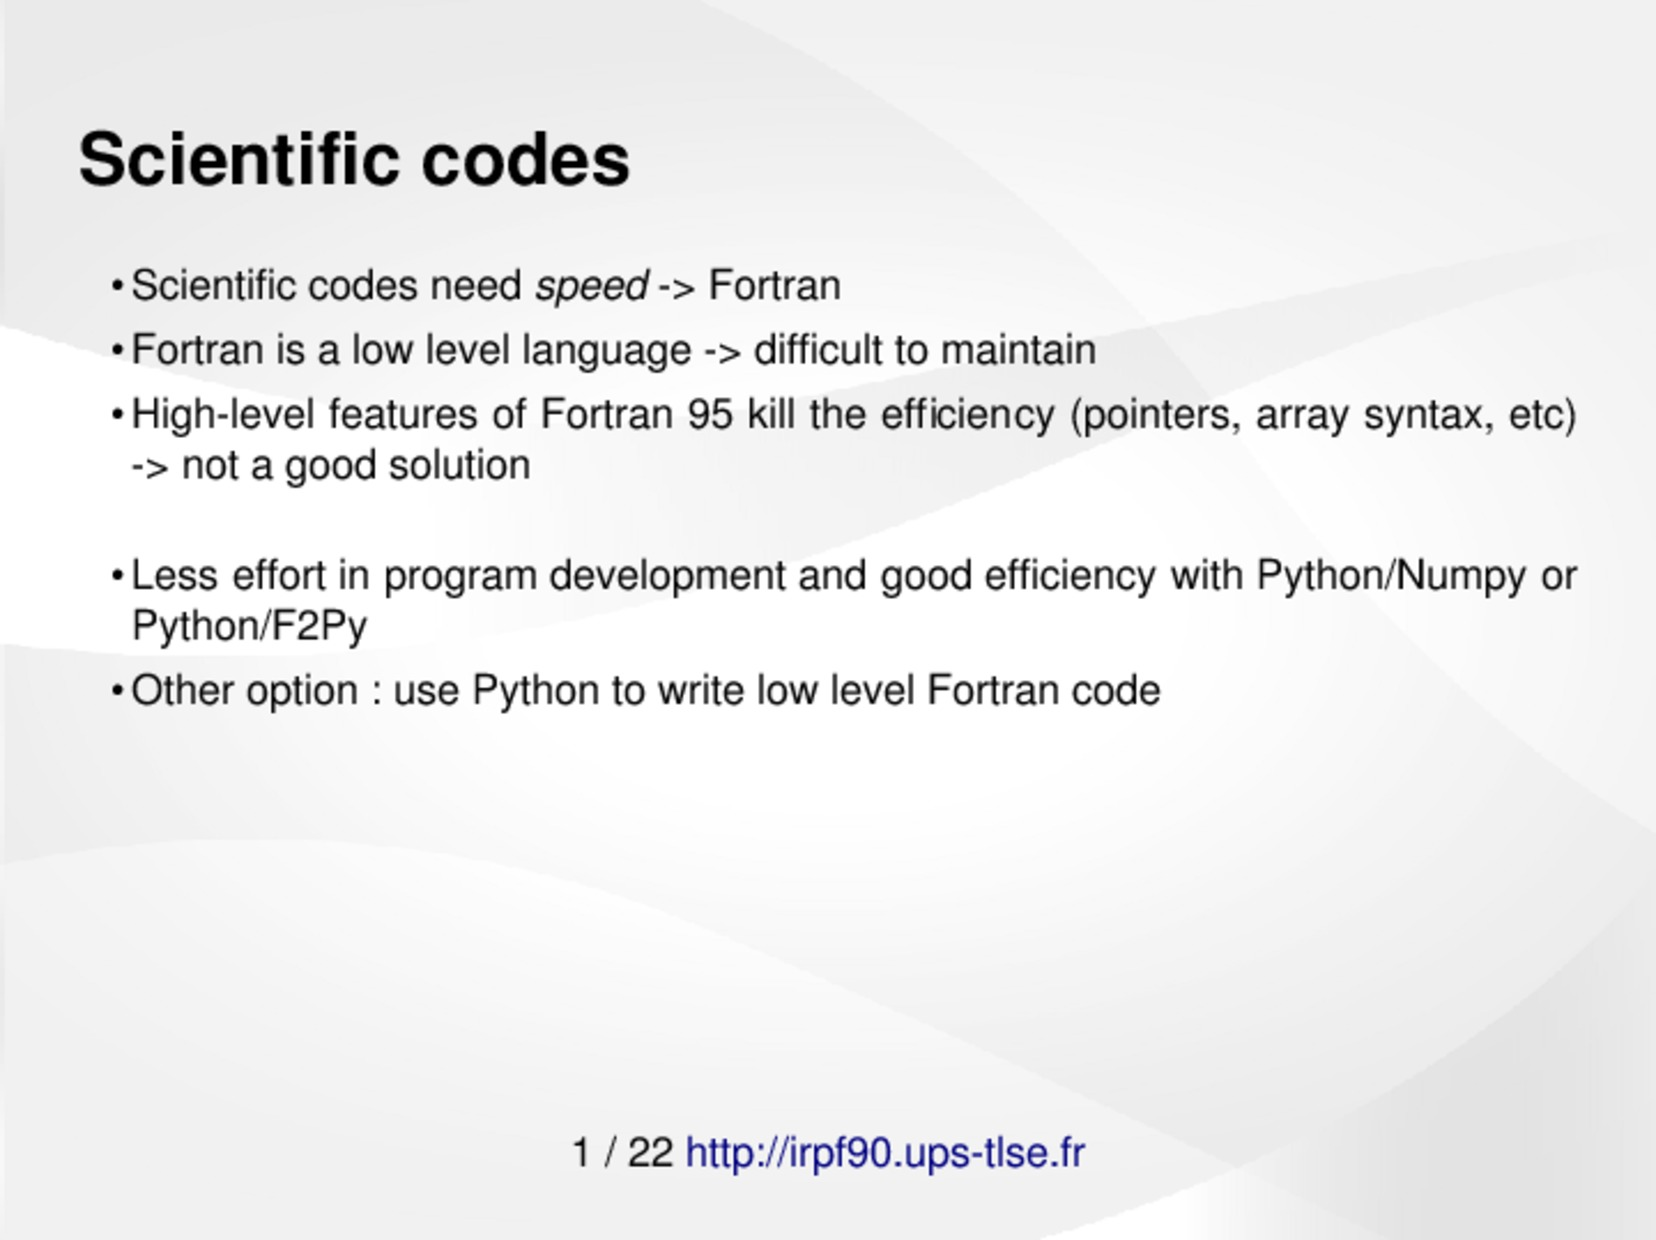 IRPF90 : a Fortran code generator for HPC